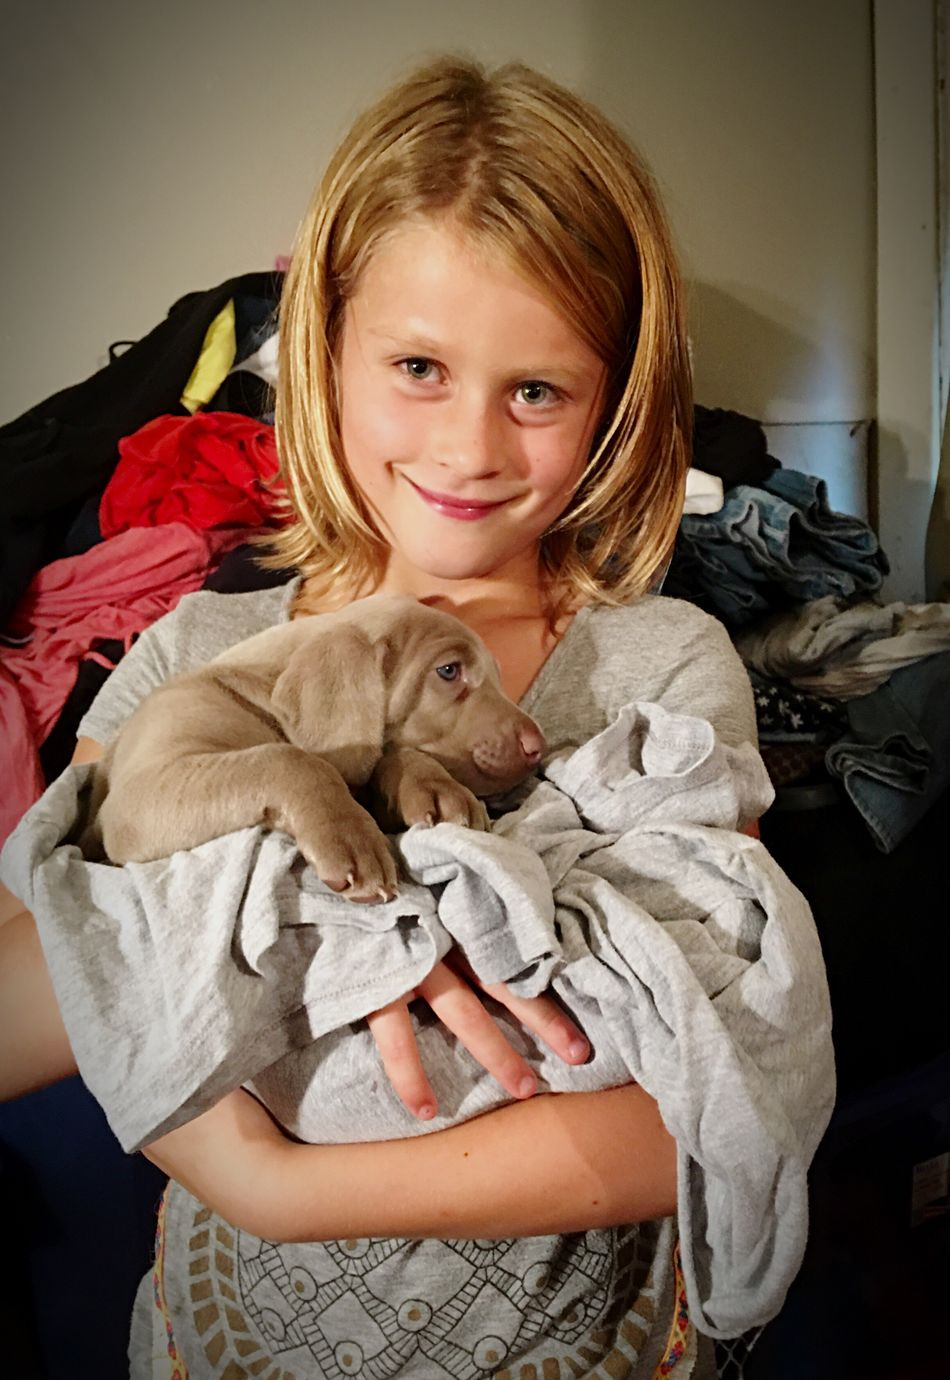 Puppy Childhood Weinheimer Weinheim Weinhemer Puppy Dogs Cute Grey Blue Eyes Daughter Girls Ilovemydogs Lovedogs